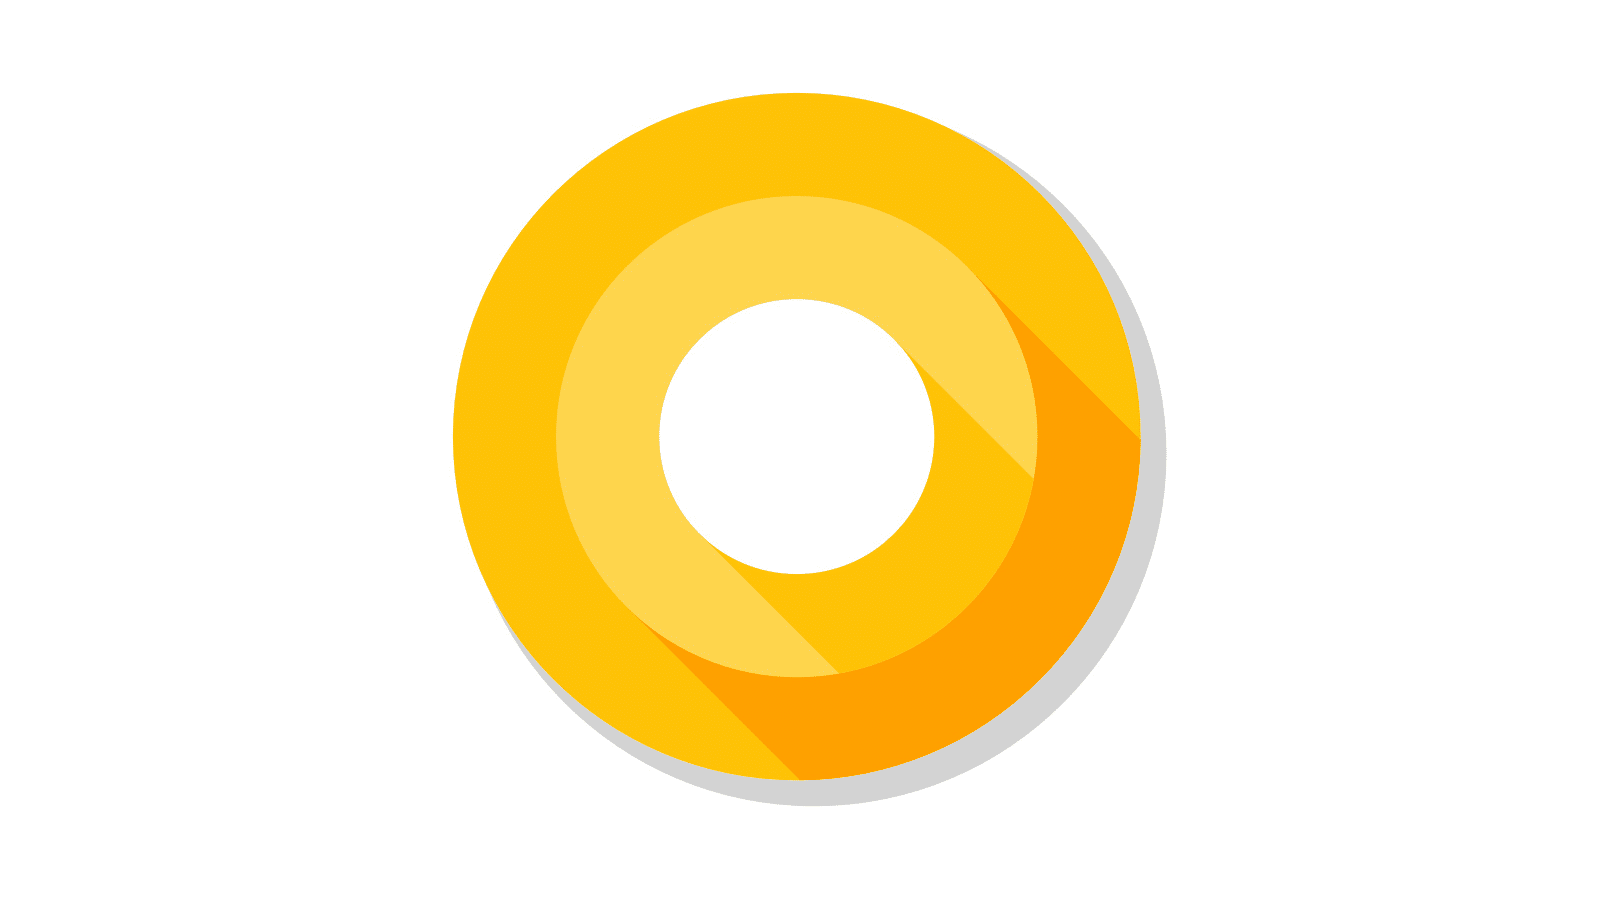 New android o what does it mean to you as a developer droids new android o what does it mean to you as a developer droids on roids blog biocorpaavc Images